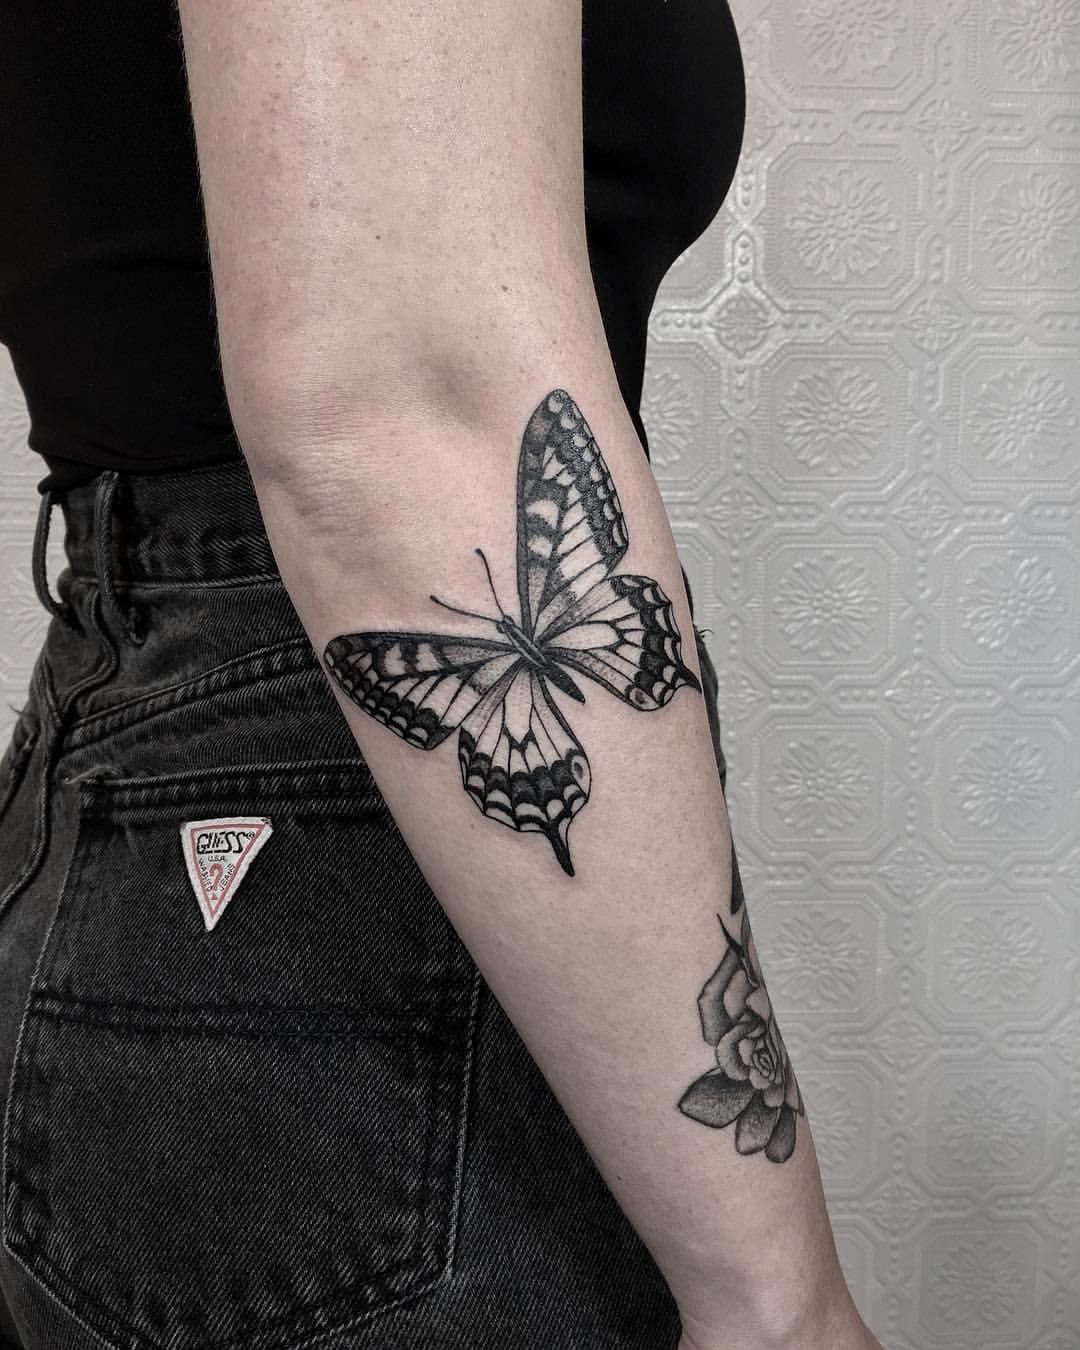 Pin by Kendall Eaton on Tattoo in 2020 Elbow tattoos